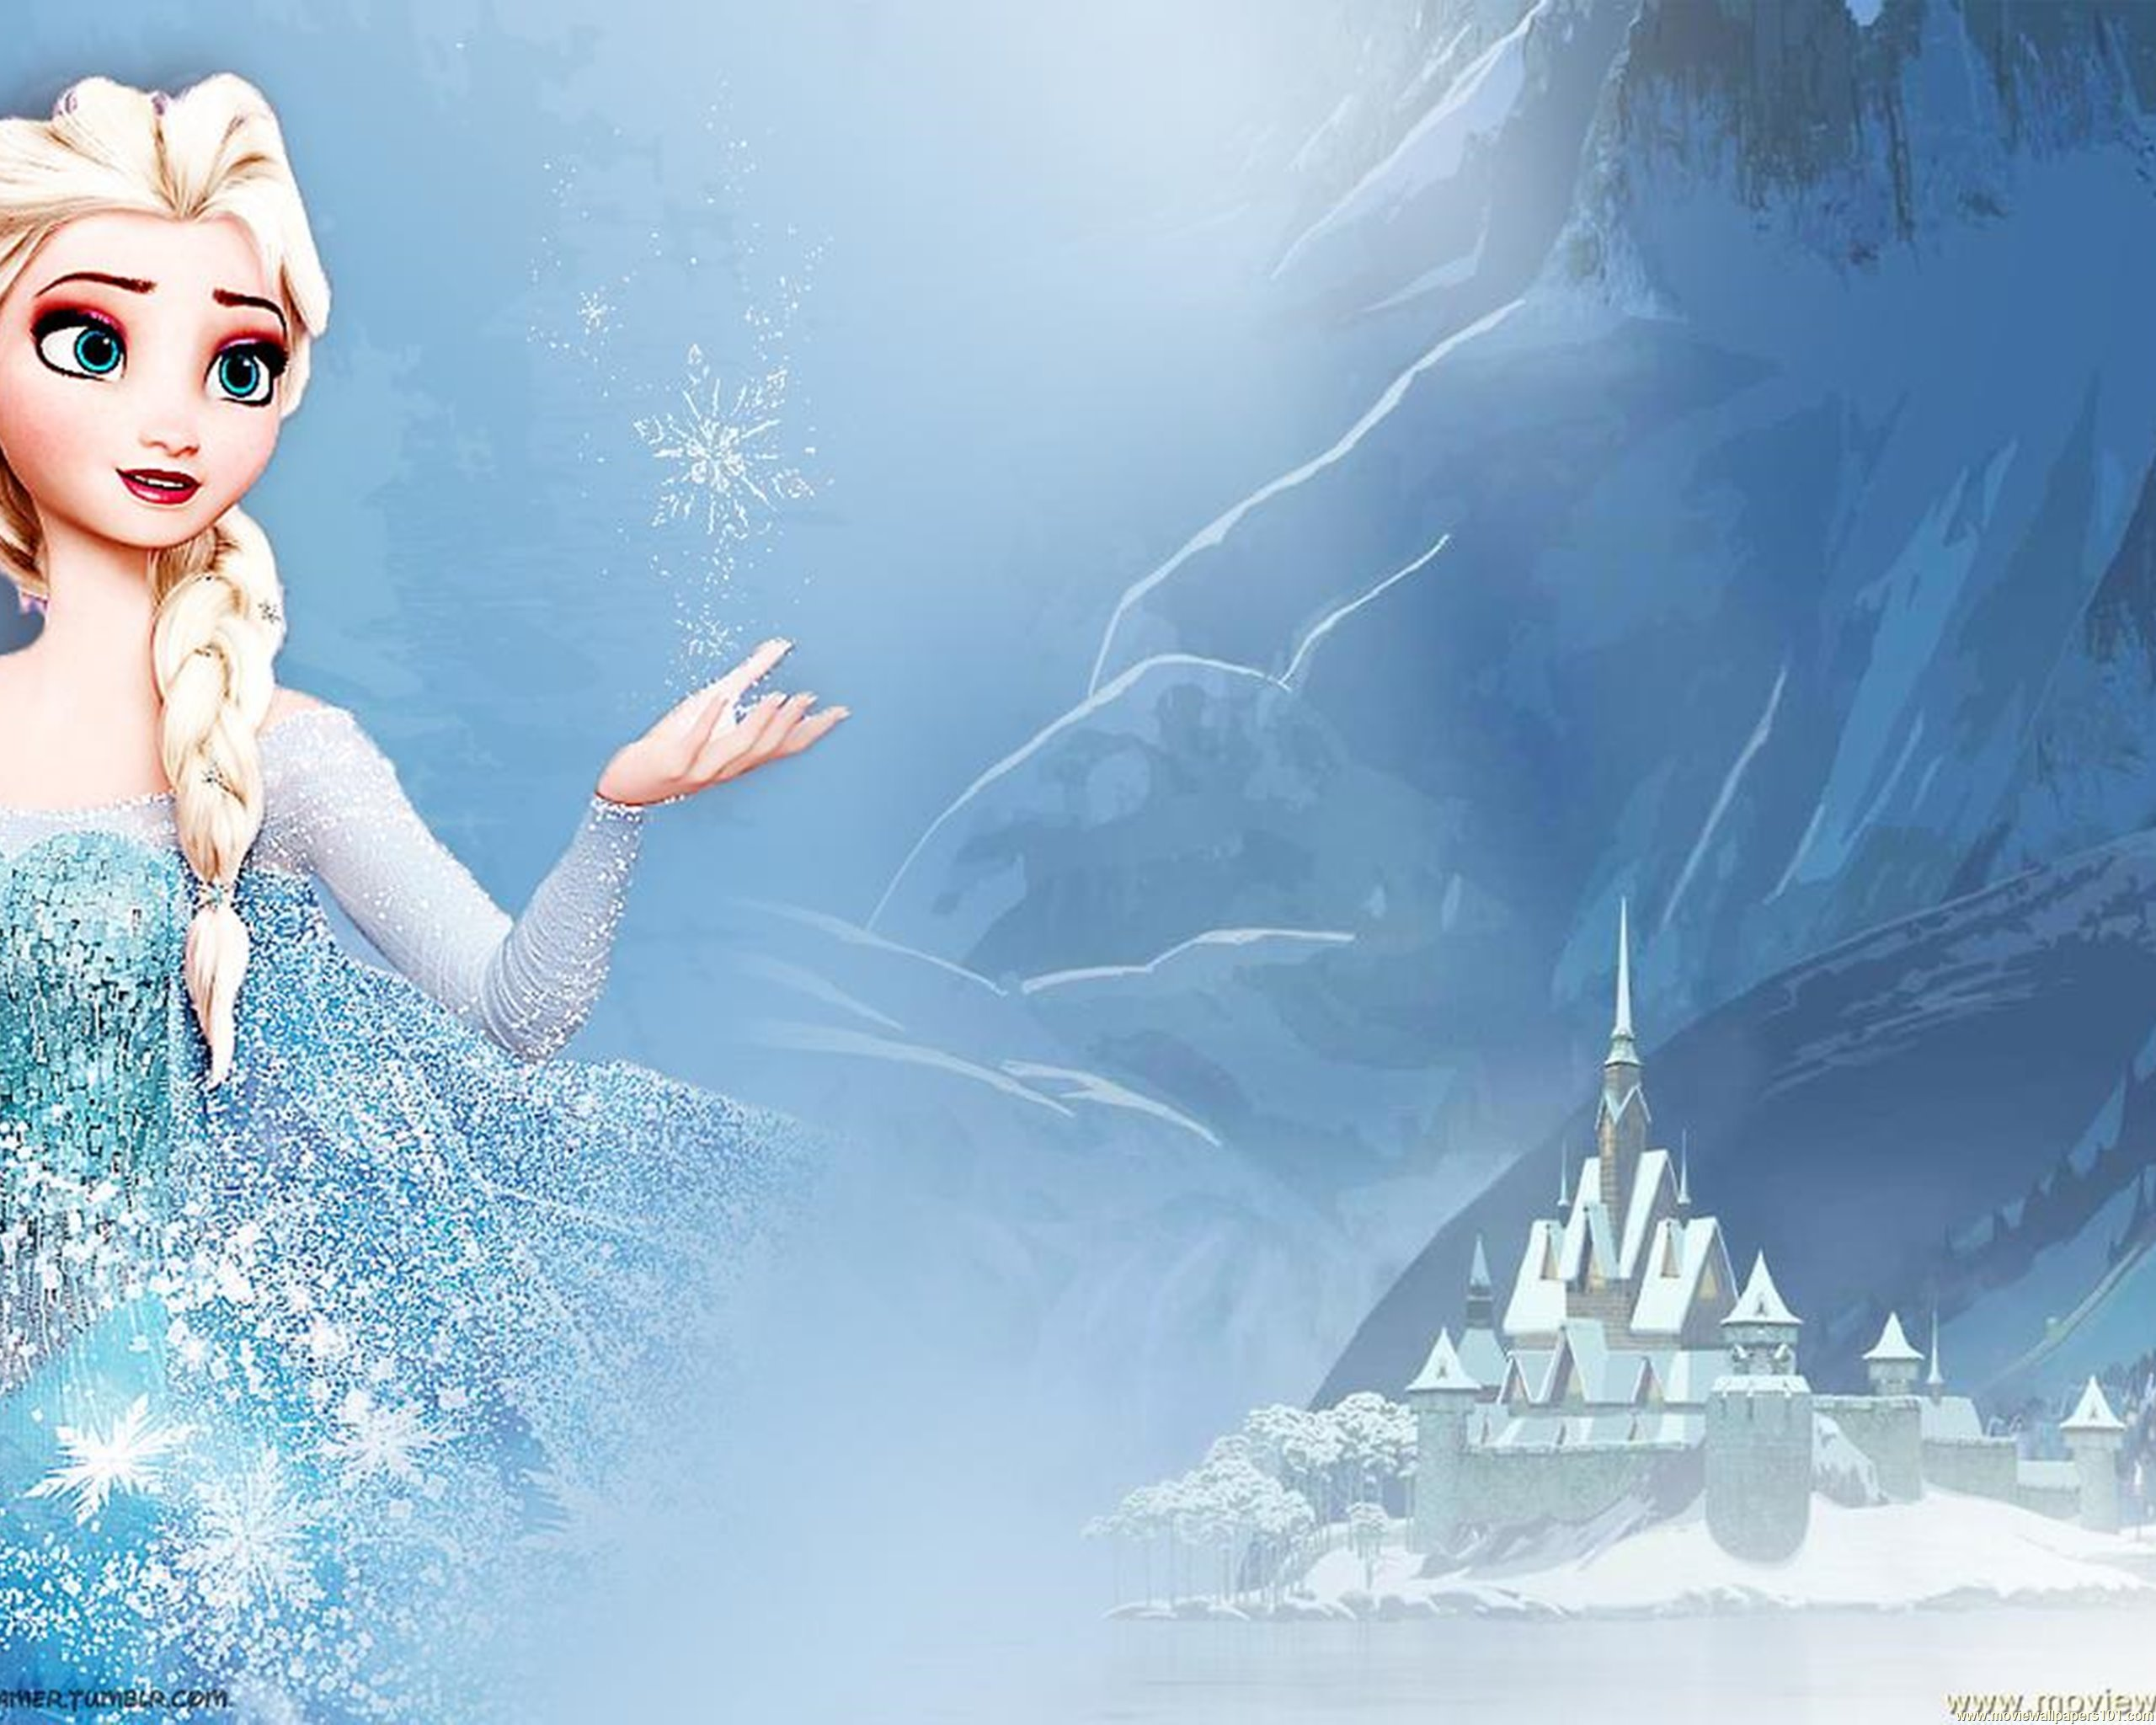 Wallpapers Hollywood 2013 Frozen Frozen high quality 2560x2048